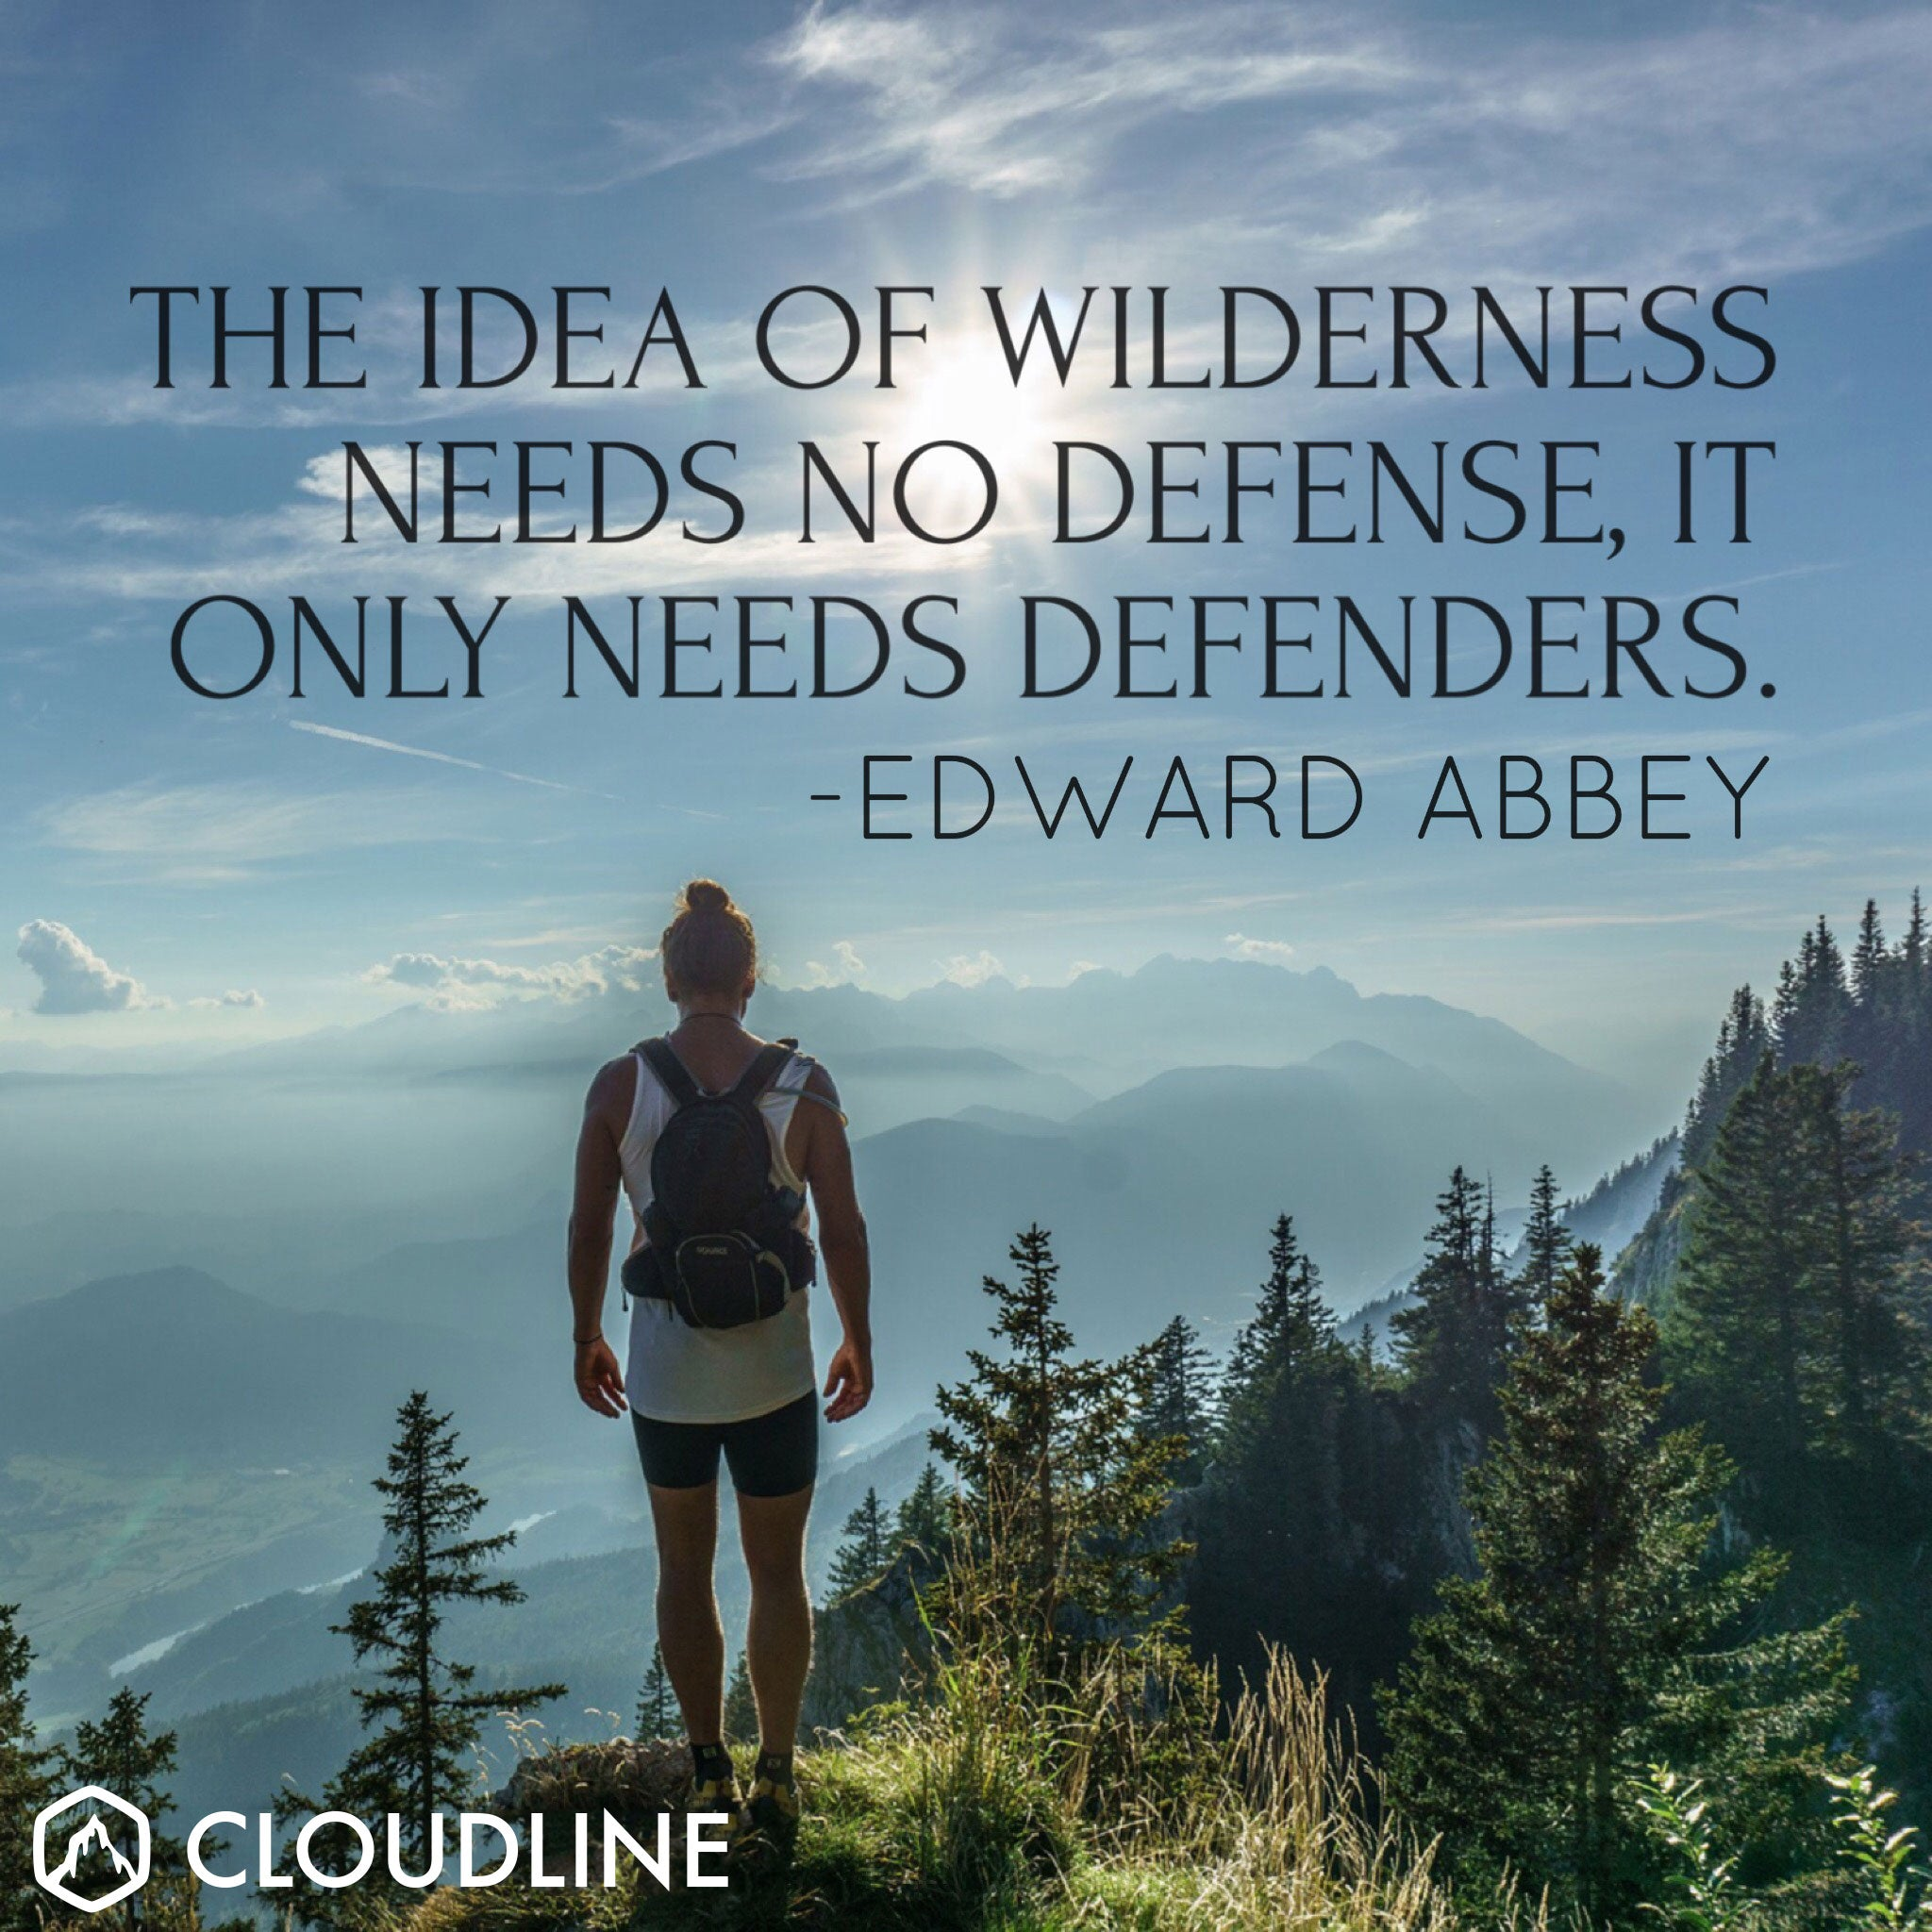 """The idea of wilderness needs no defense, it only needs defenders."" - Edward Abbey"